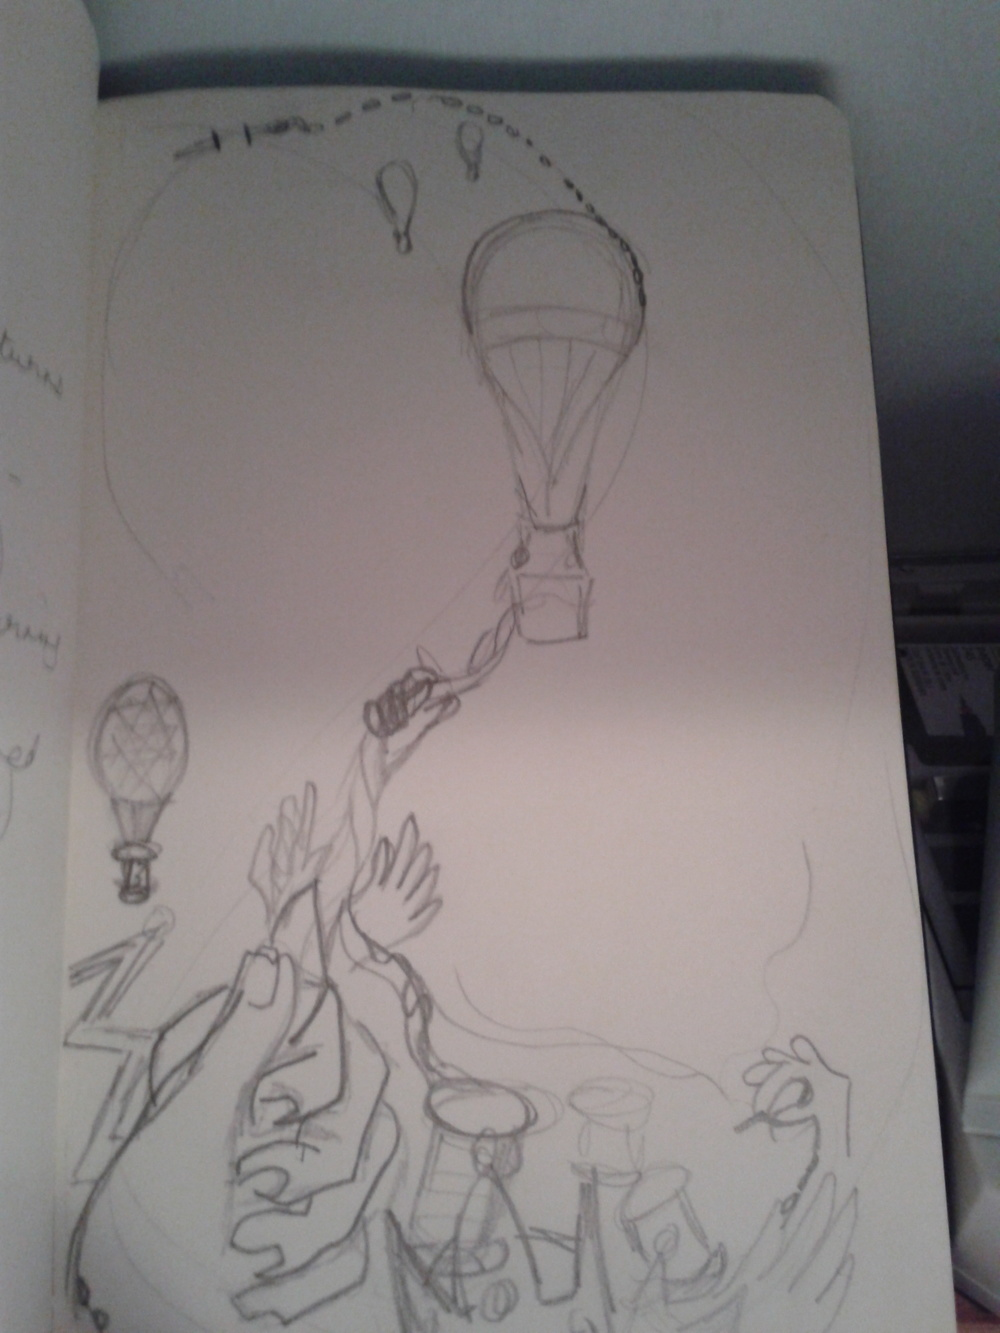 Initial sketch and Idea for illustration